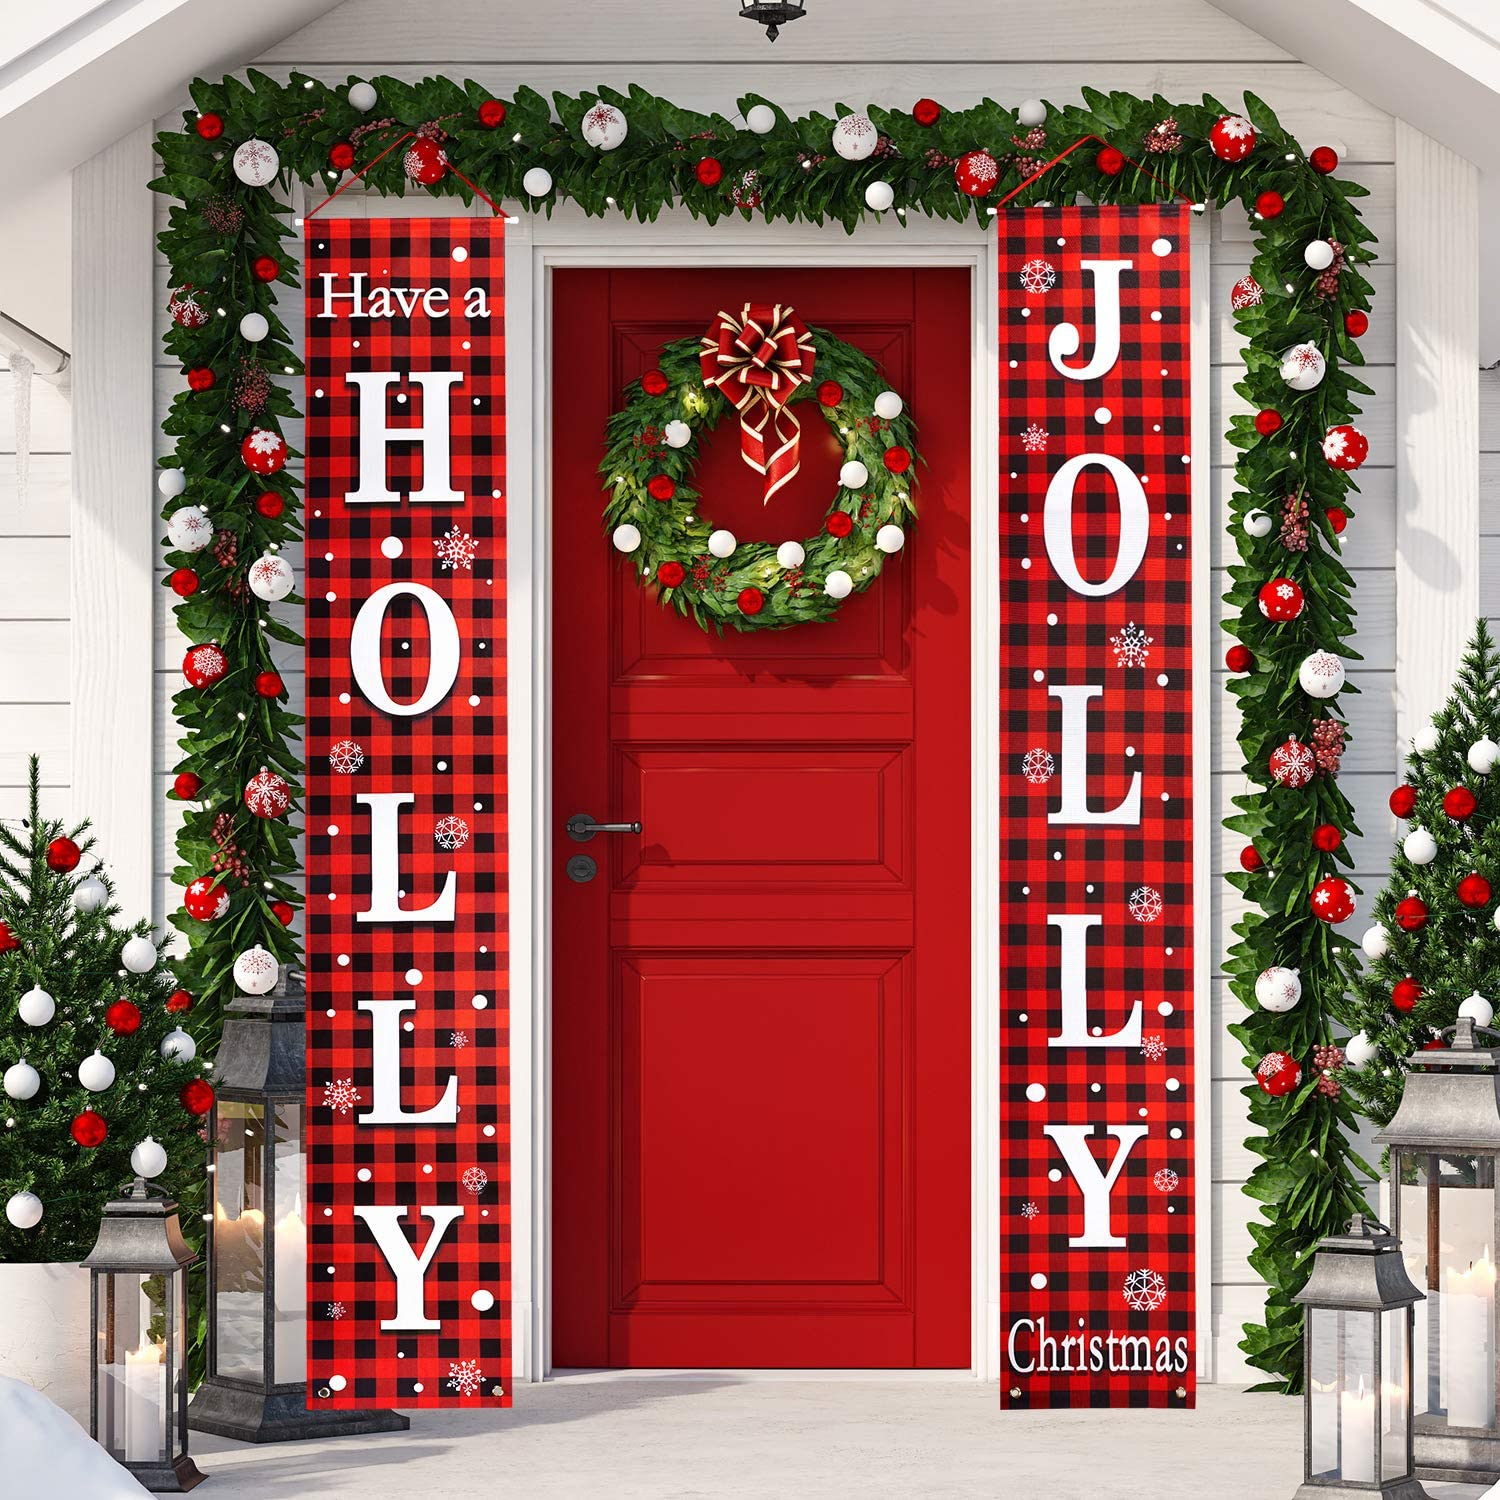 Christmas Banner Holly Jolly Red Black Buffalo Check Christmas Porch Sign for Holiday Home Indoor Outdoor Porch Wall Christmas Decoration